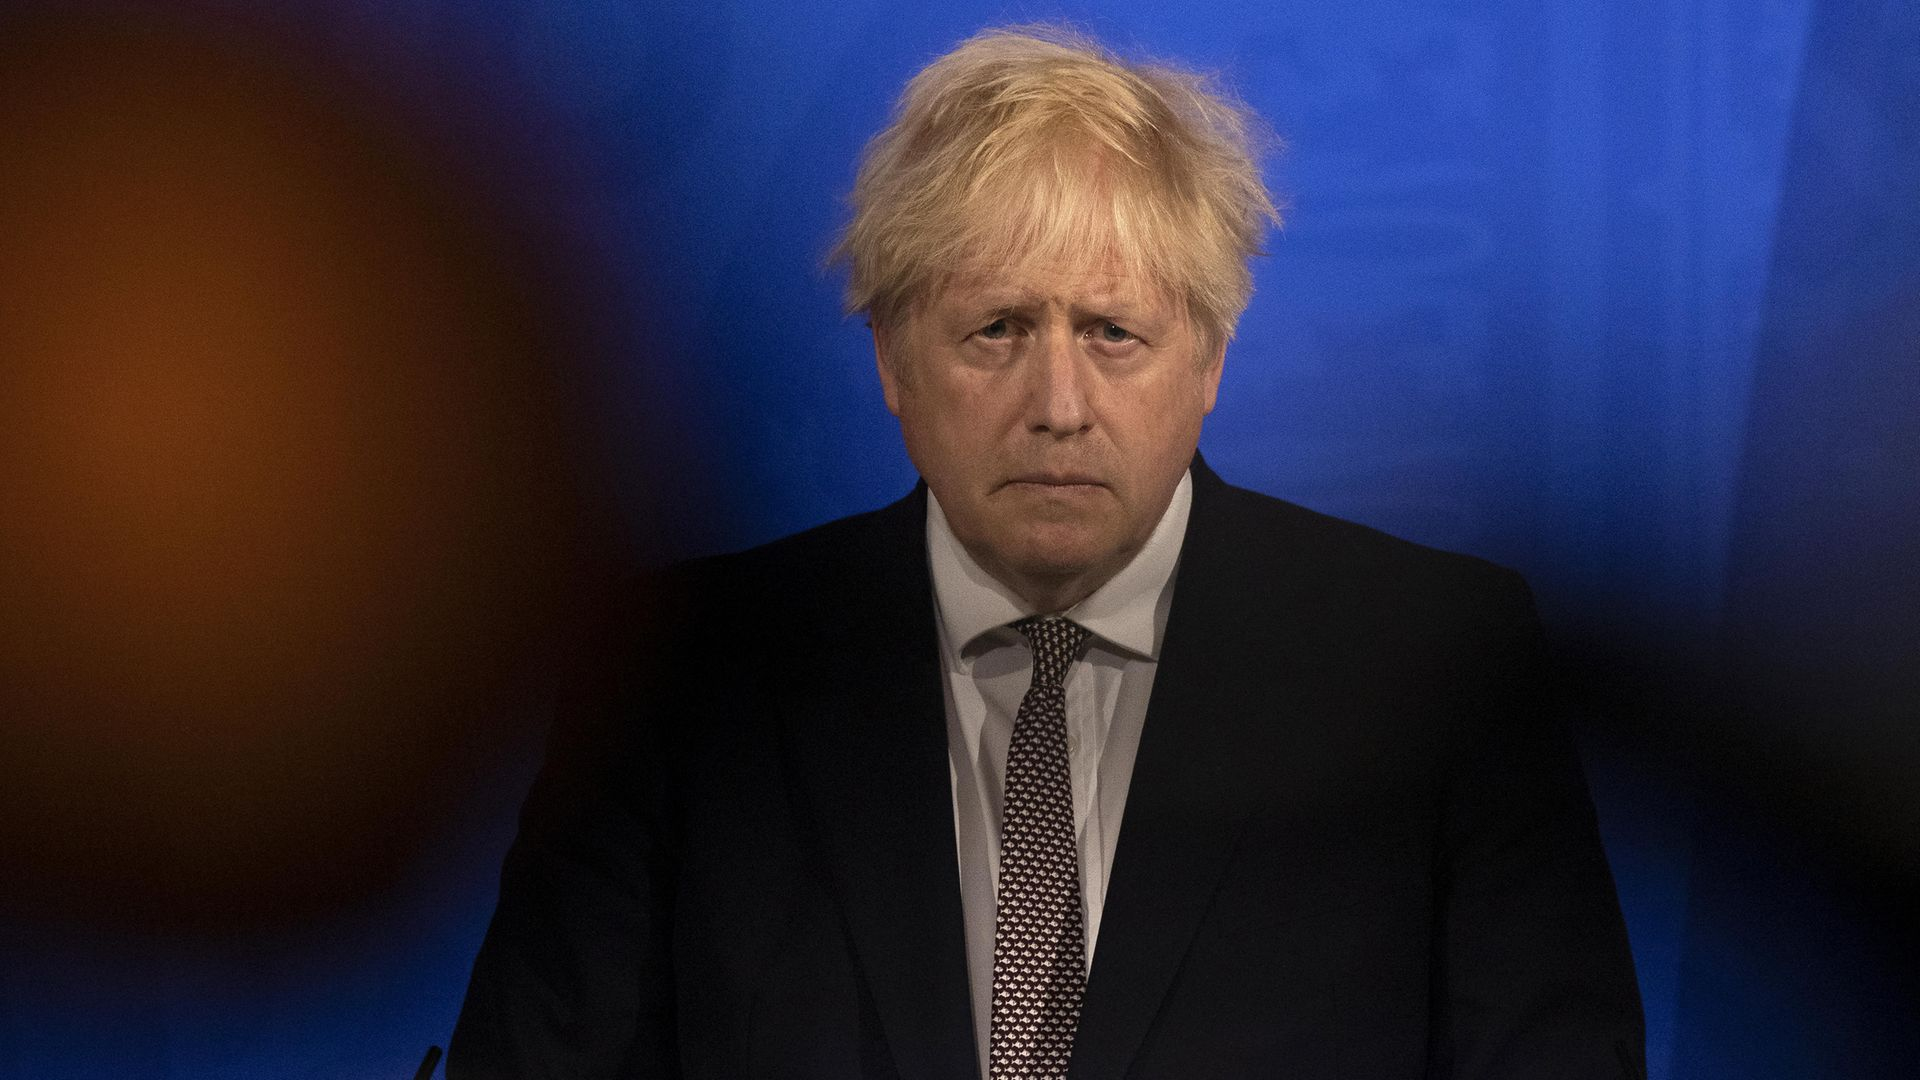 Boris Johnson has said an inquiry will take place within the next 12 months - Credit: PA